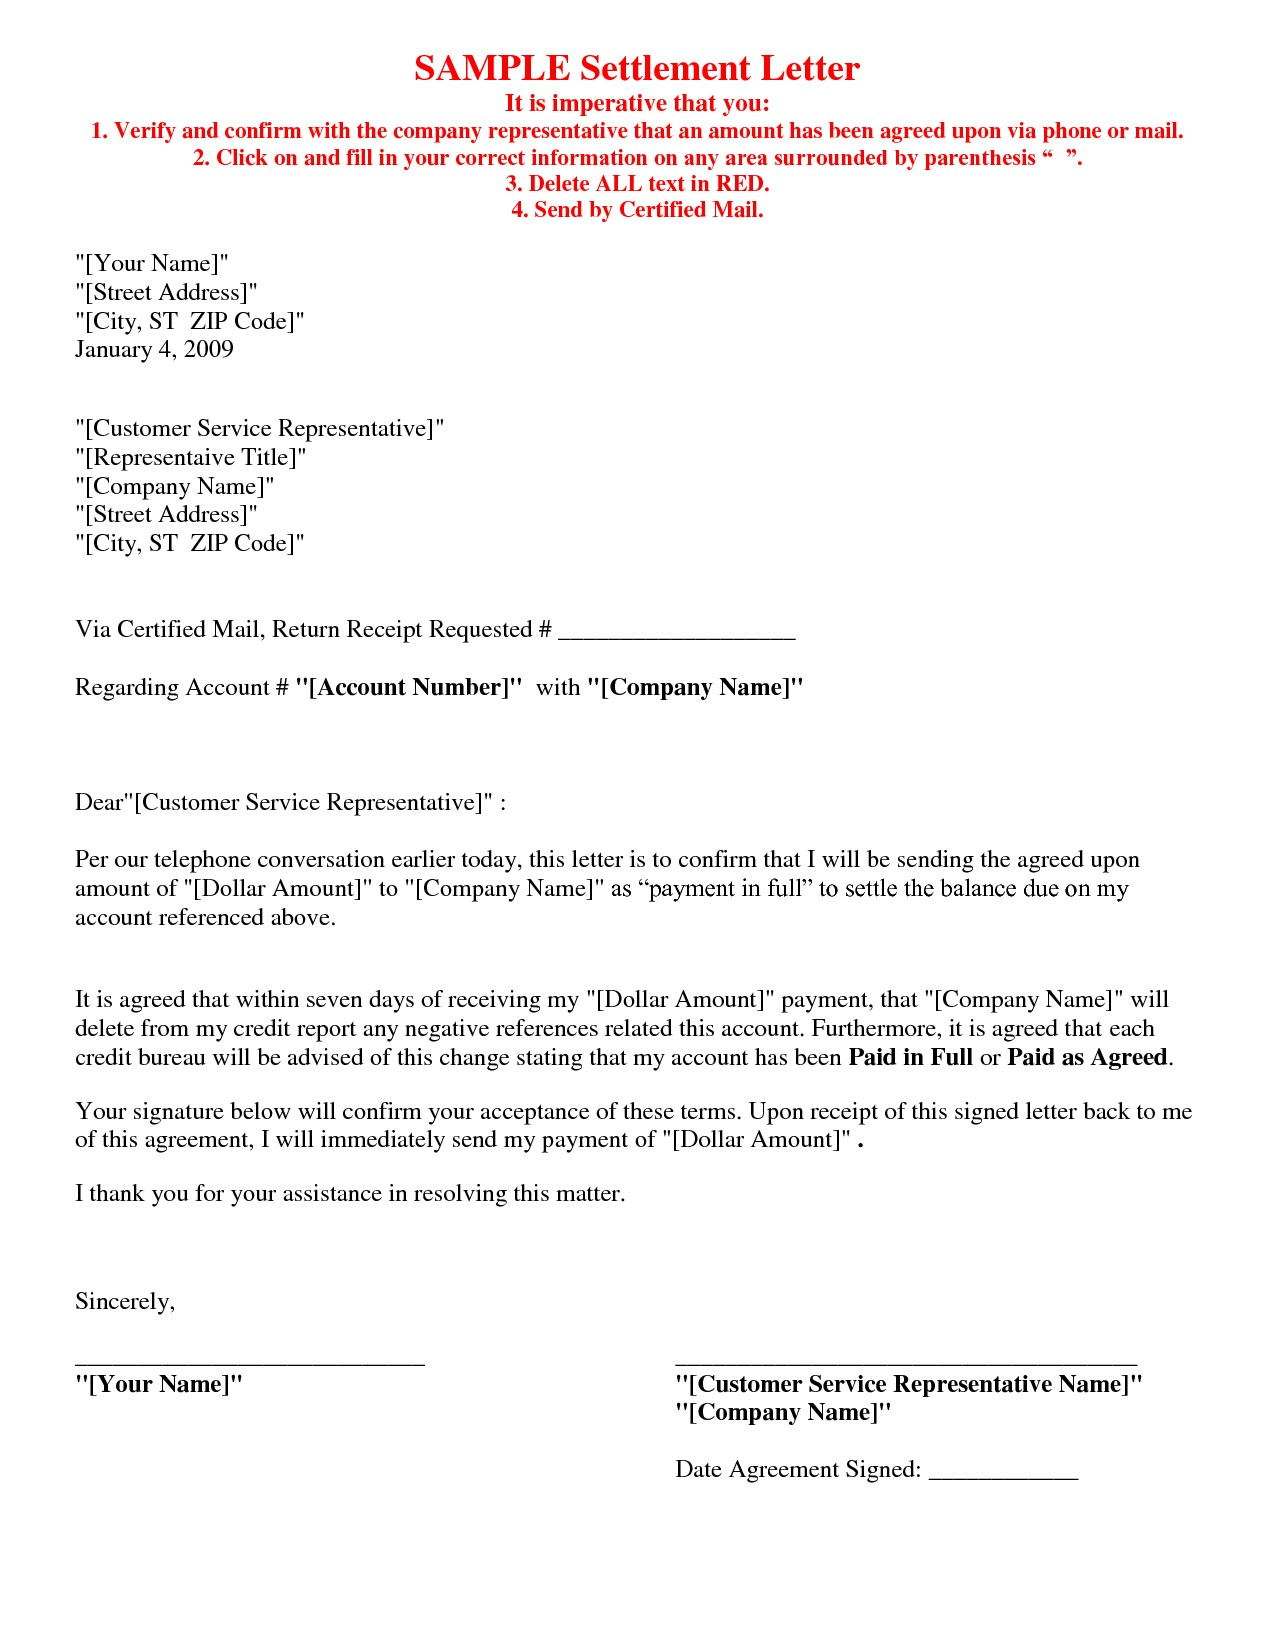 debt settlement agreement letter template Collection-Payment Agreement Letter Format Fresh Contract Letter Template Contract Approval Letter Template Letters 9-j